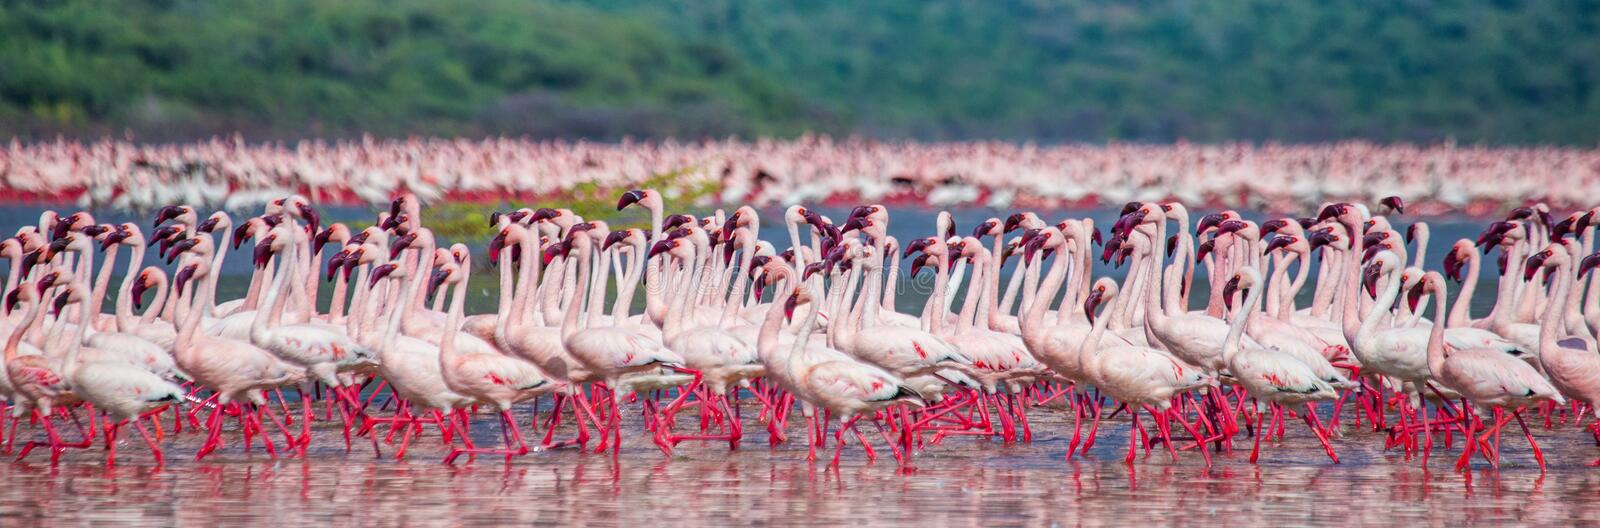 Hundreds of thousands of flamingos on the lake. Kenya. Africa. Lake Bogoria National Reserve. An excellent illustration royalty free stock photo